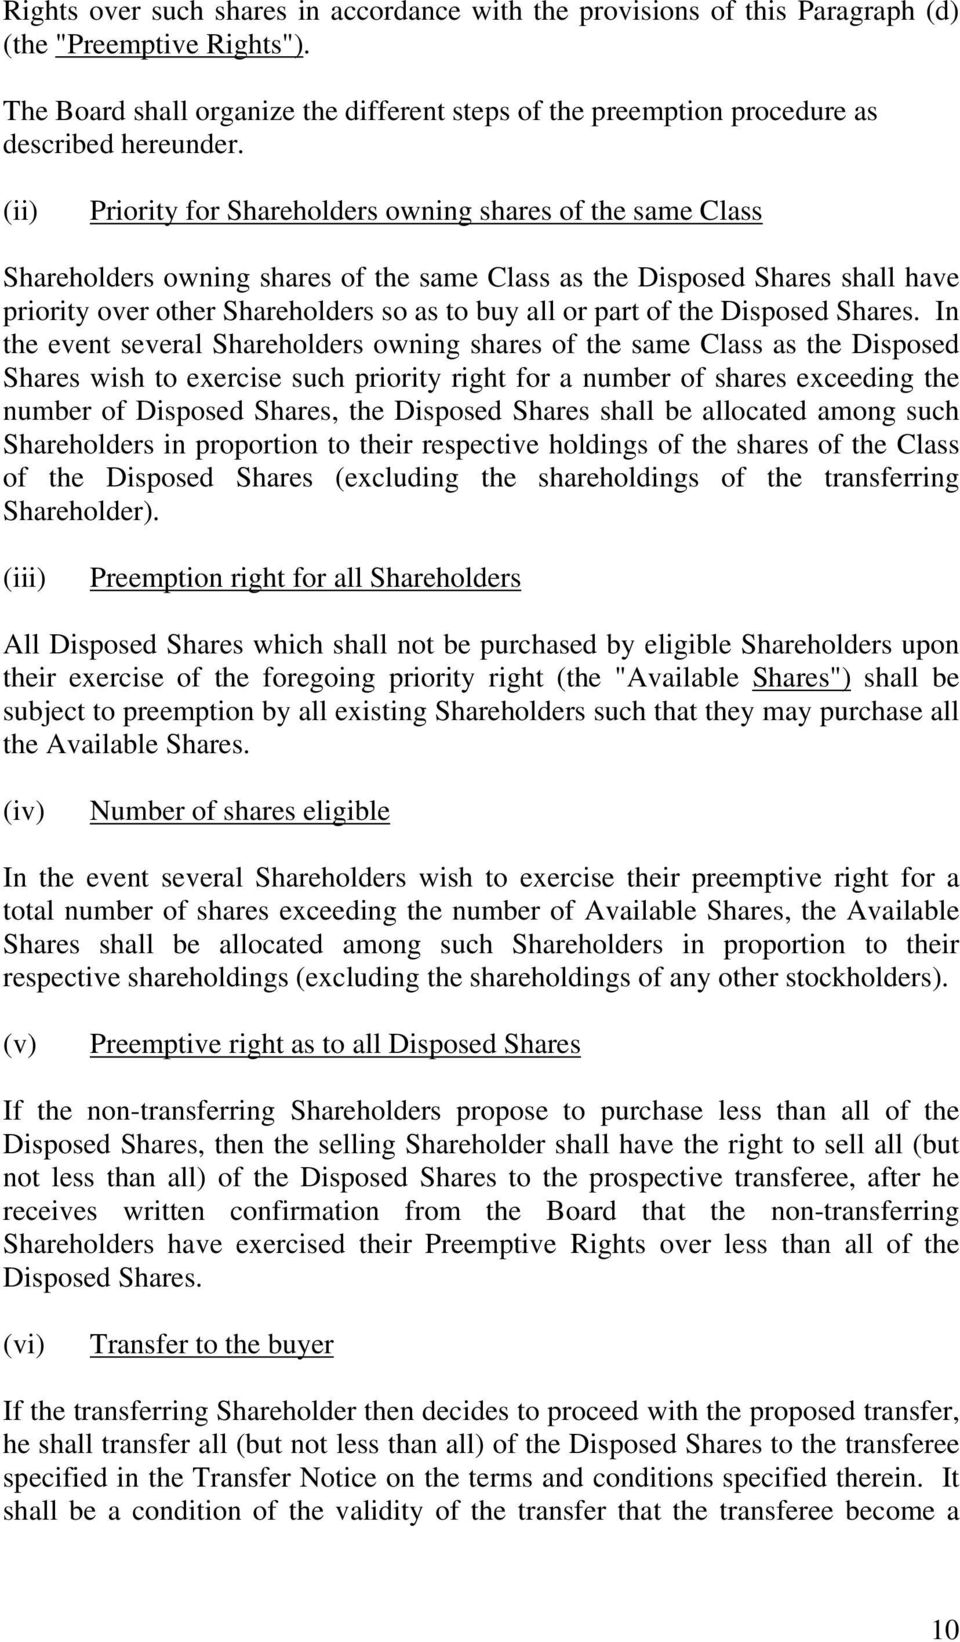 (ii) Priority for Shareholders owning shares of the same Class Shareholders owning shares of the same Class as the Disposed Shares shall have priority over other Shareholders so as to buy all or part